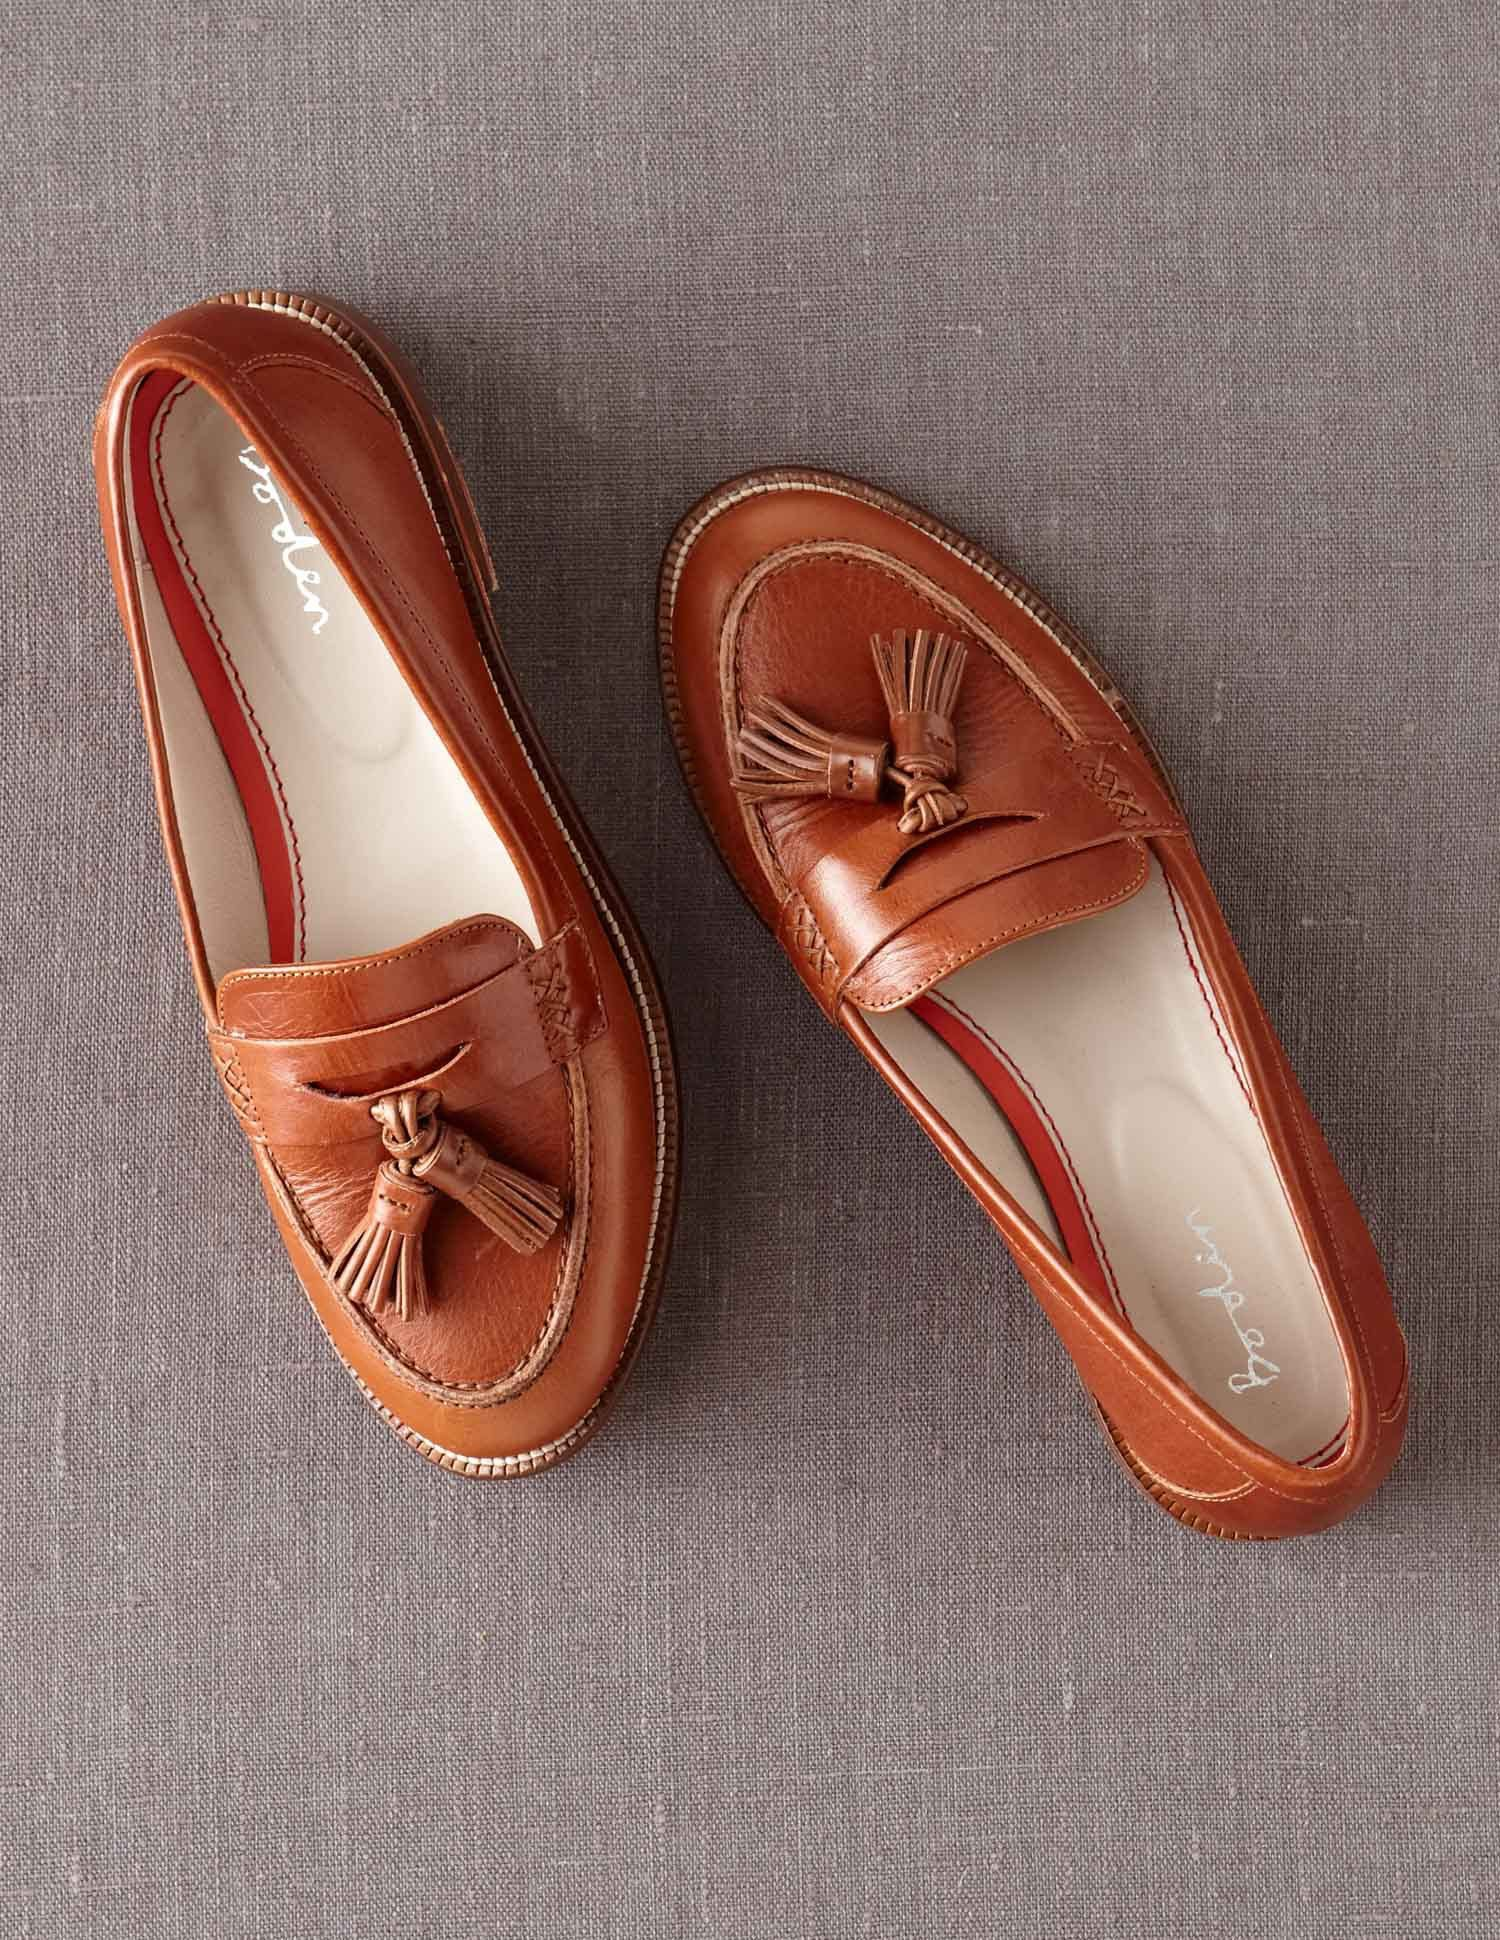 7453f2979c406 Boden Women s Brand New Tassel Loafer Leather Shoes Brown Tan ...